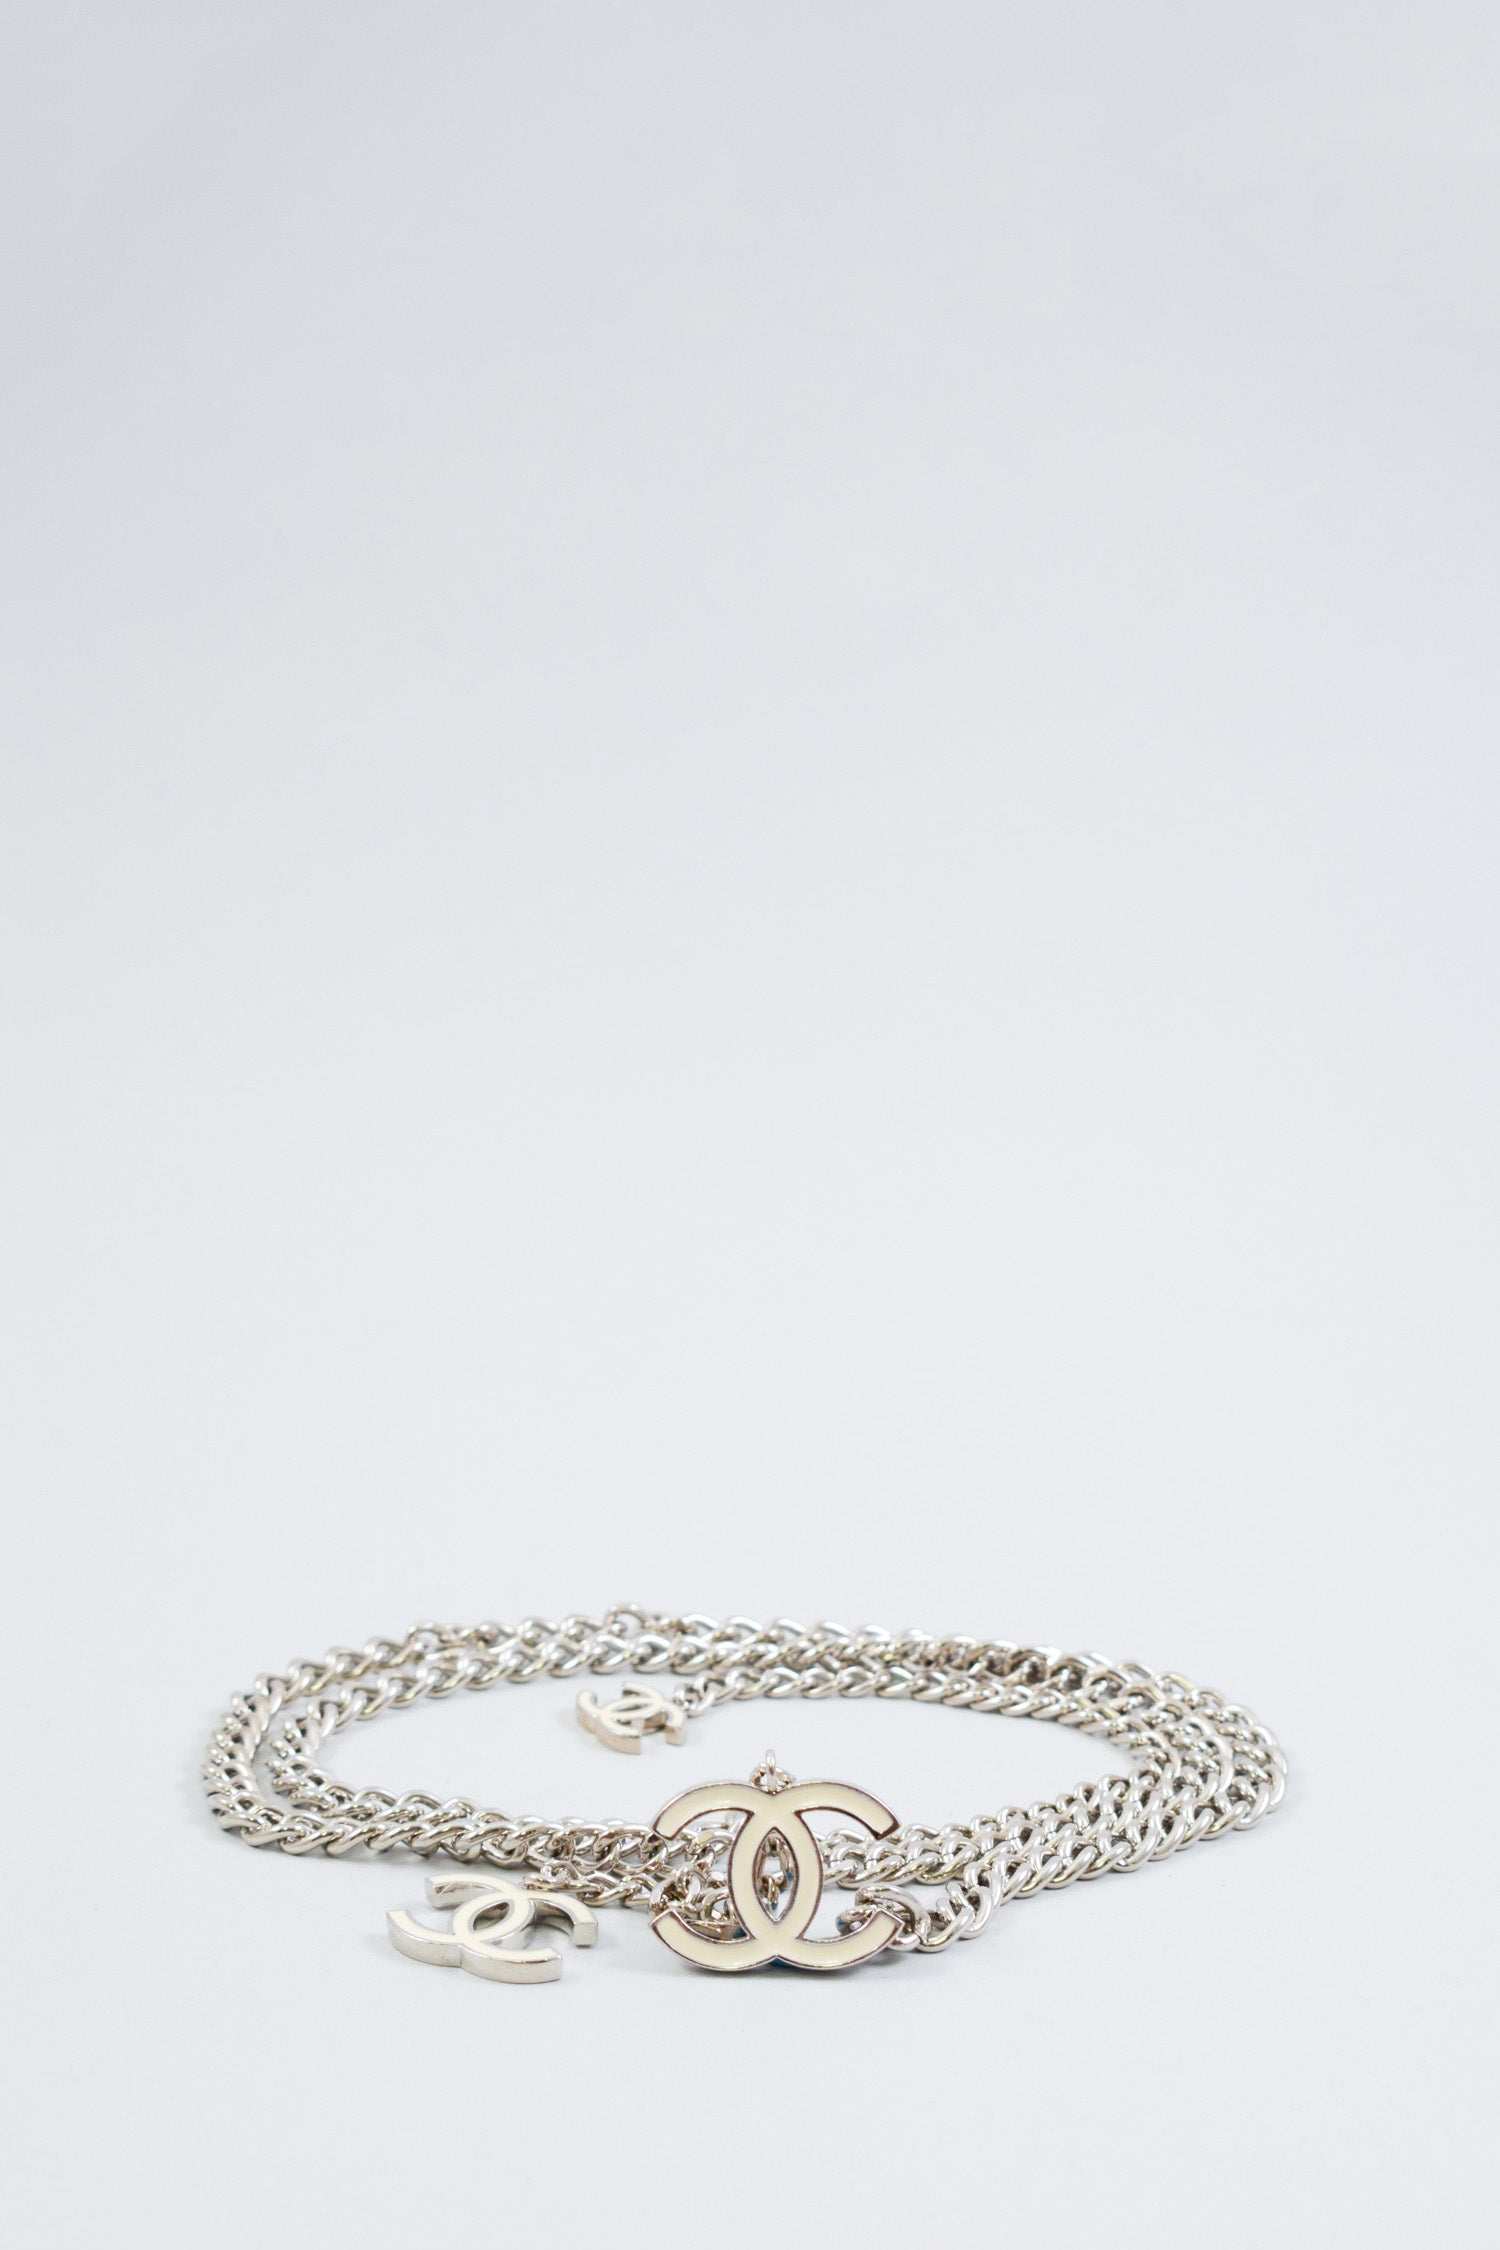 Chanel Silver Chain CC Belt